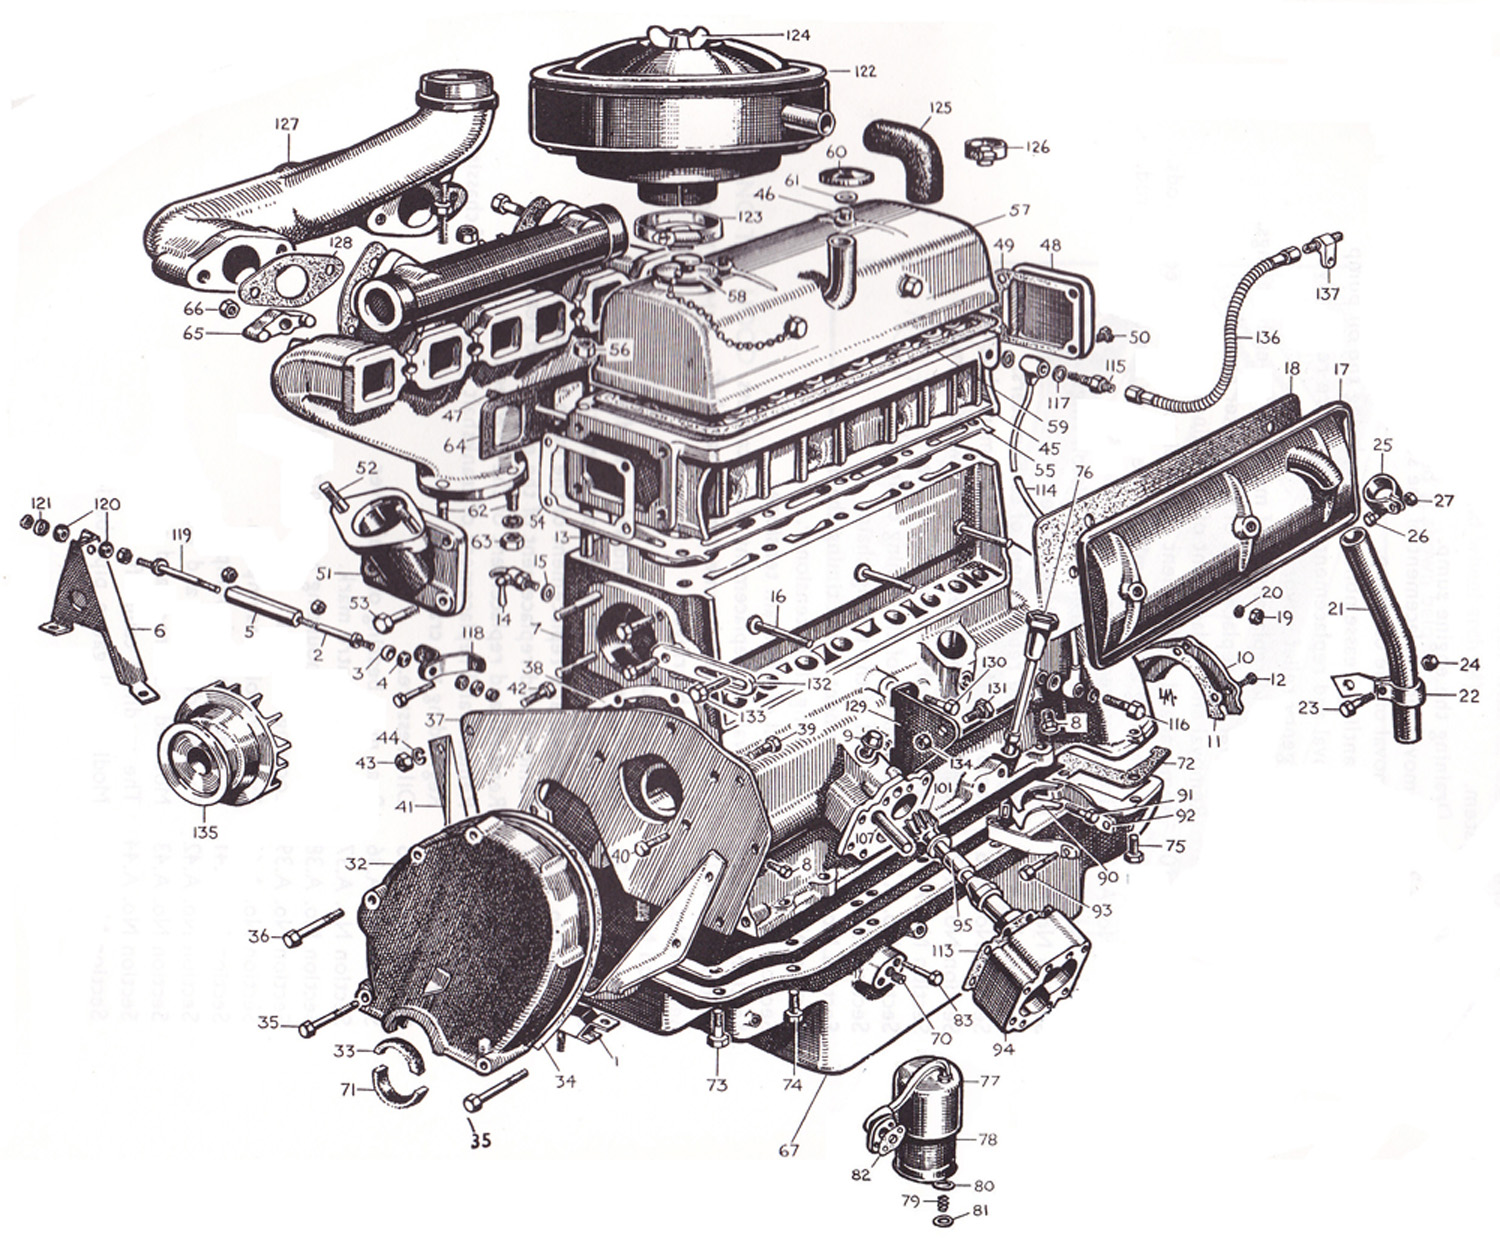 Mg Midget Engine For Sale on tr250 wiring diagram